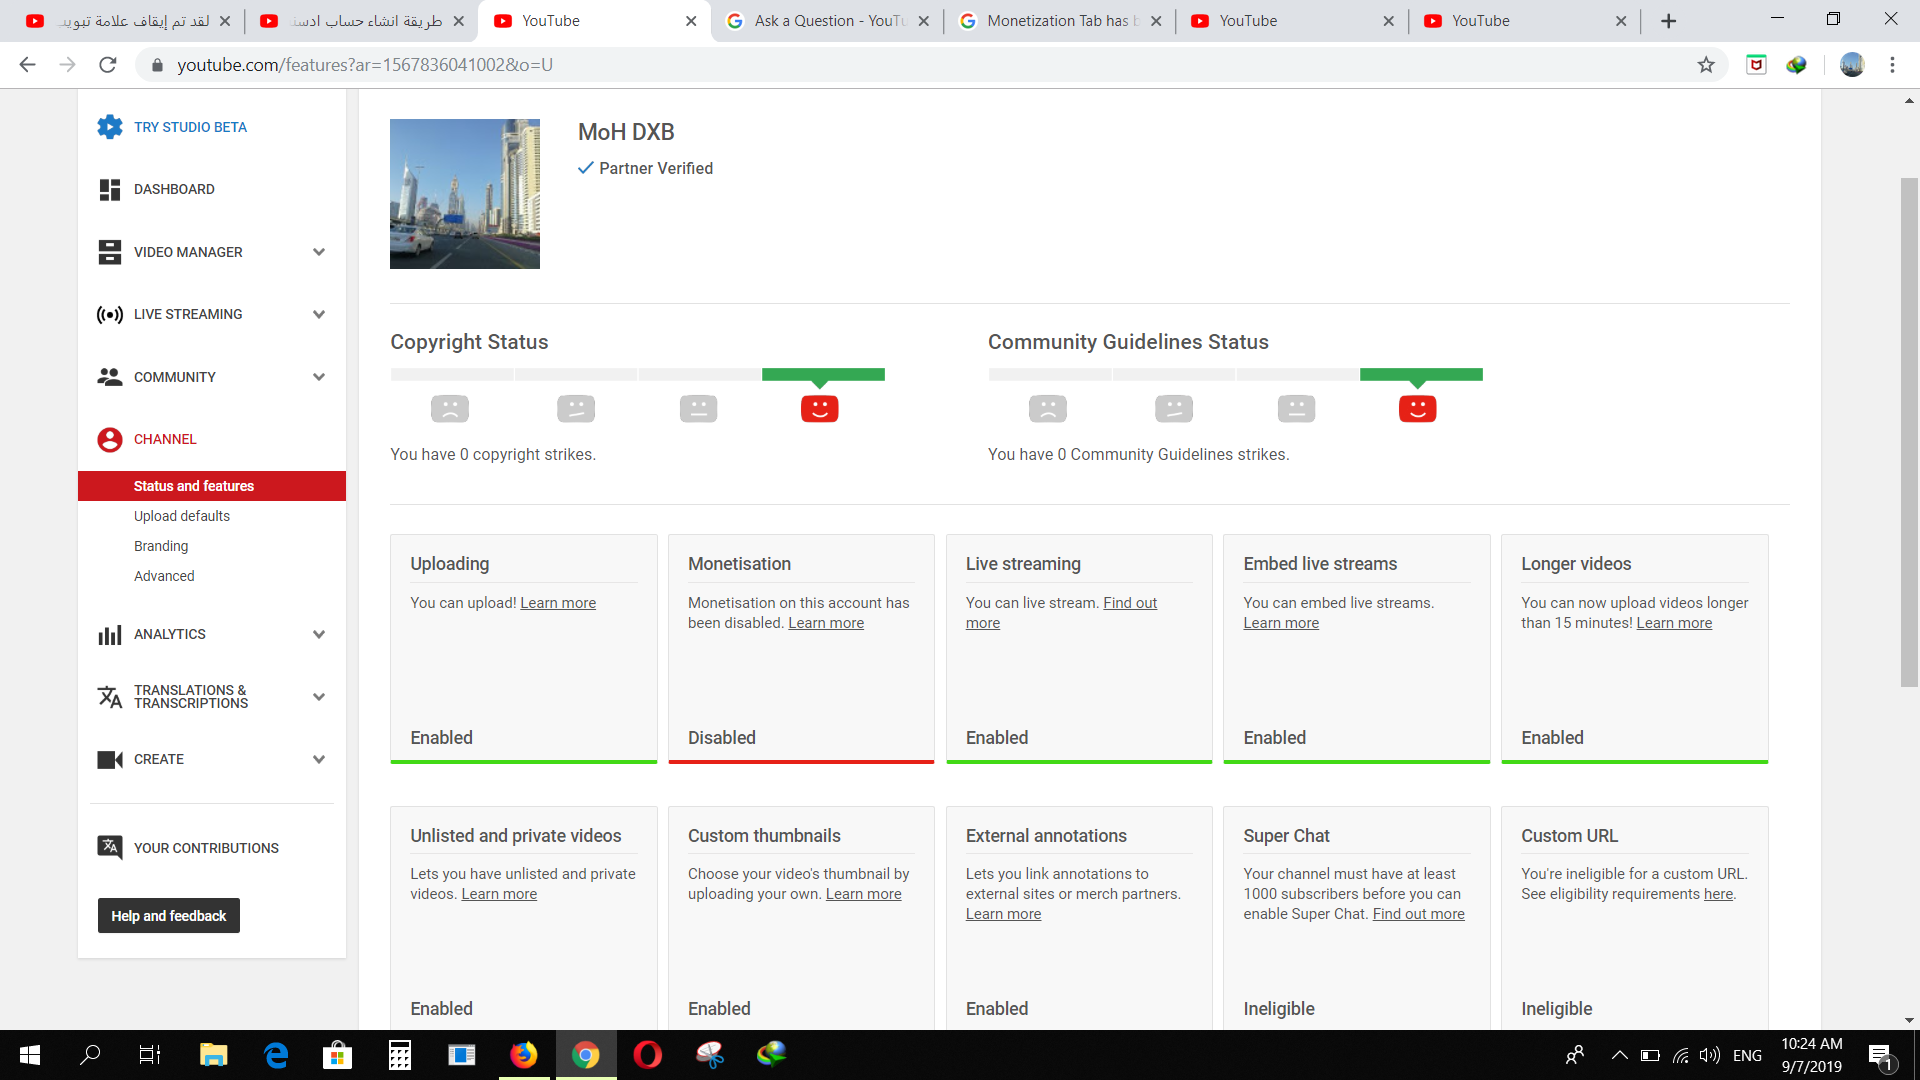 Your monetisation tab has been disabled  - YouTube Help